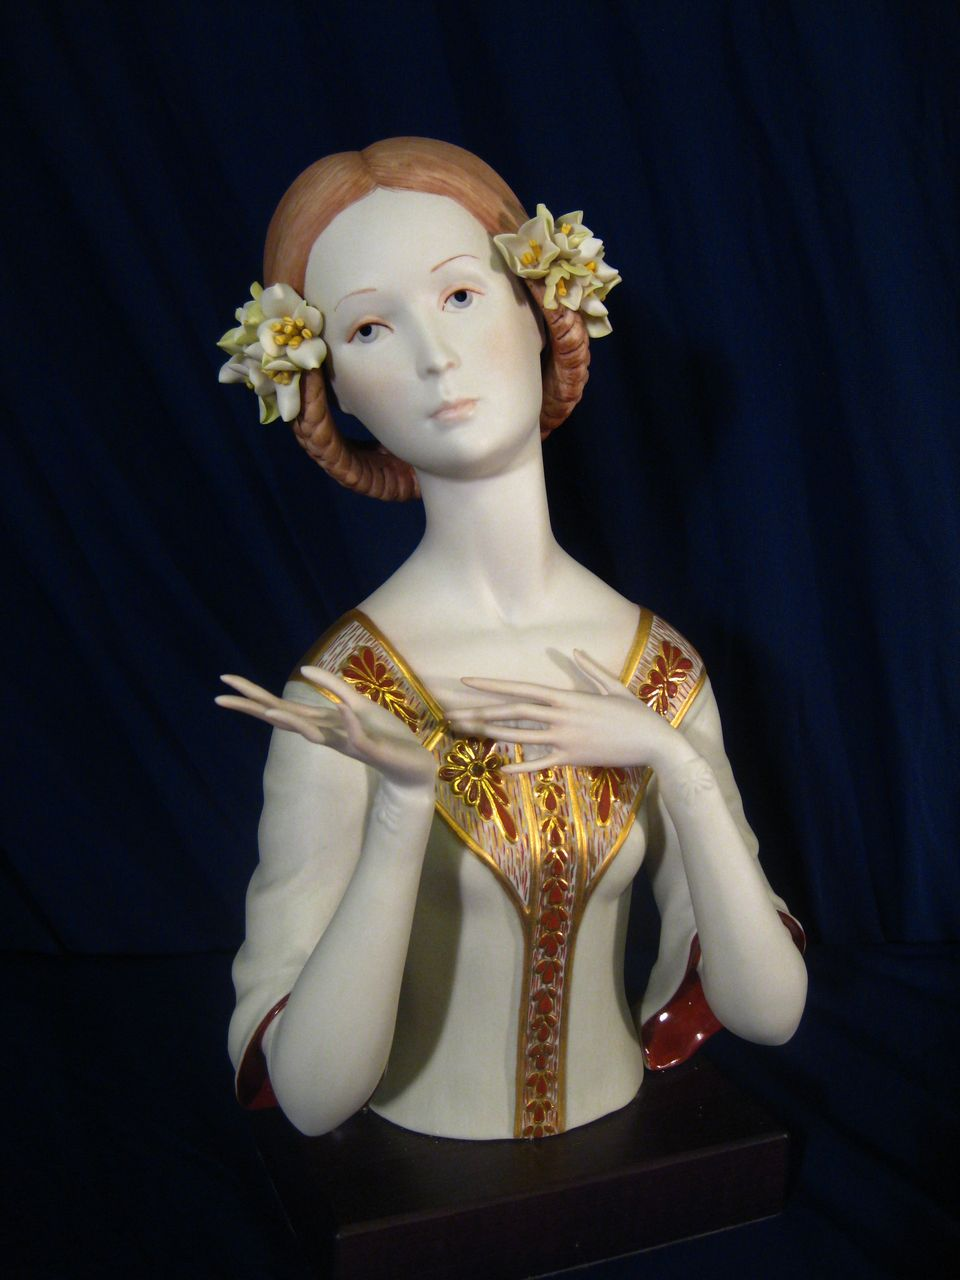 Stunning Cybis Beatrice 1965 Limited Edition of 700 Porcelain Figurine